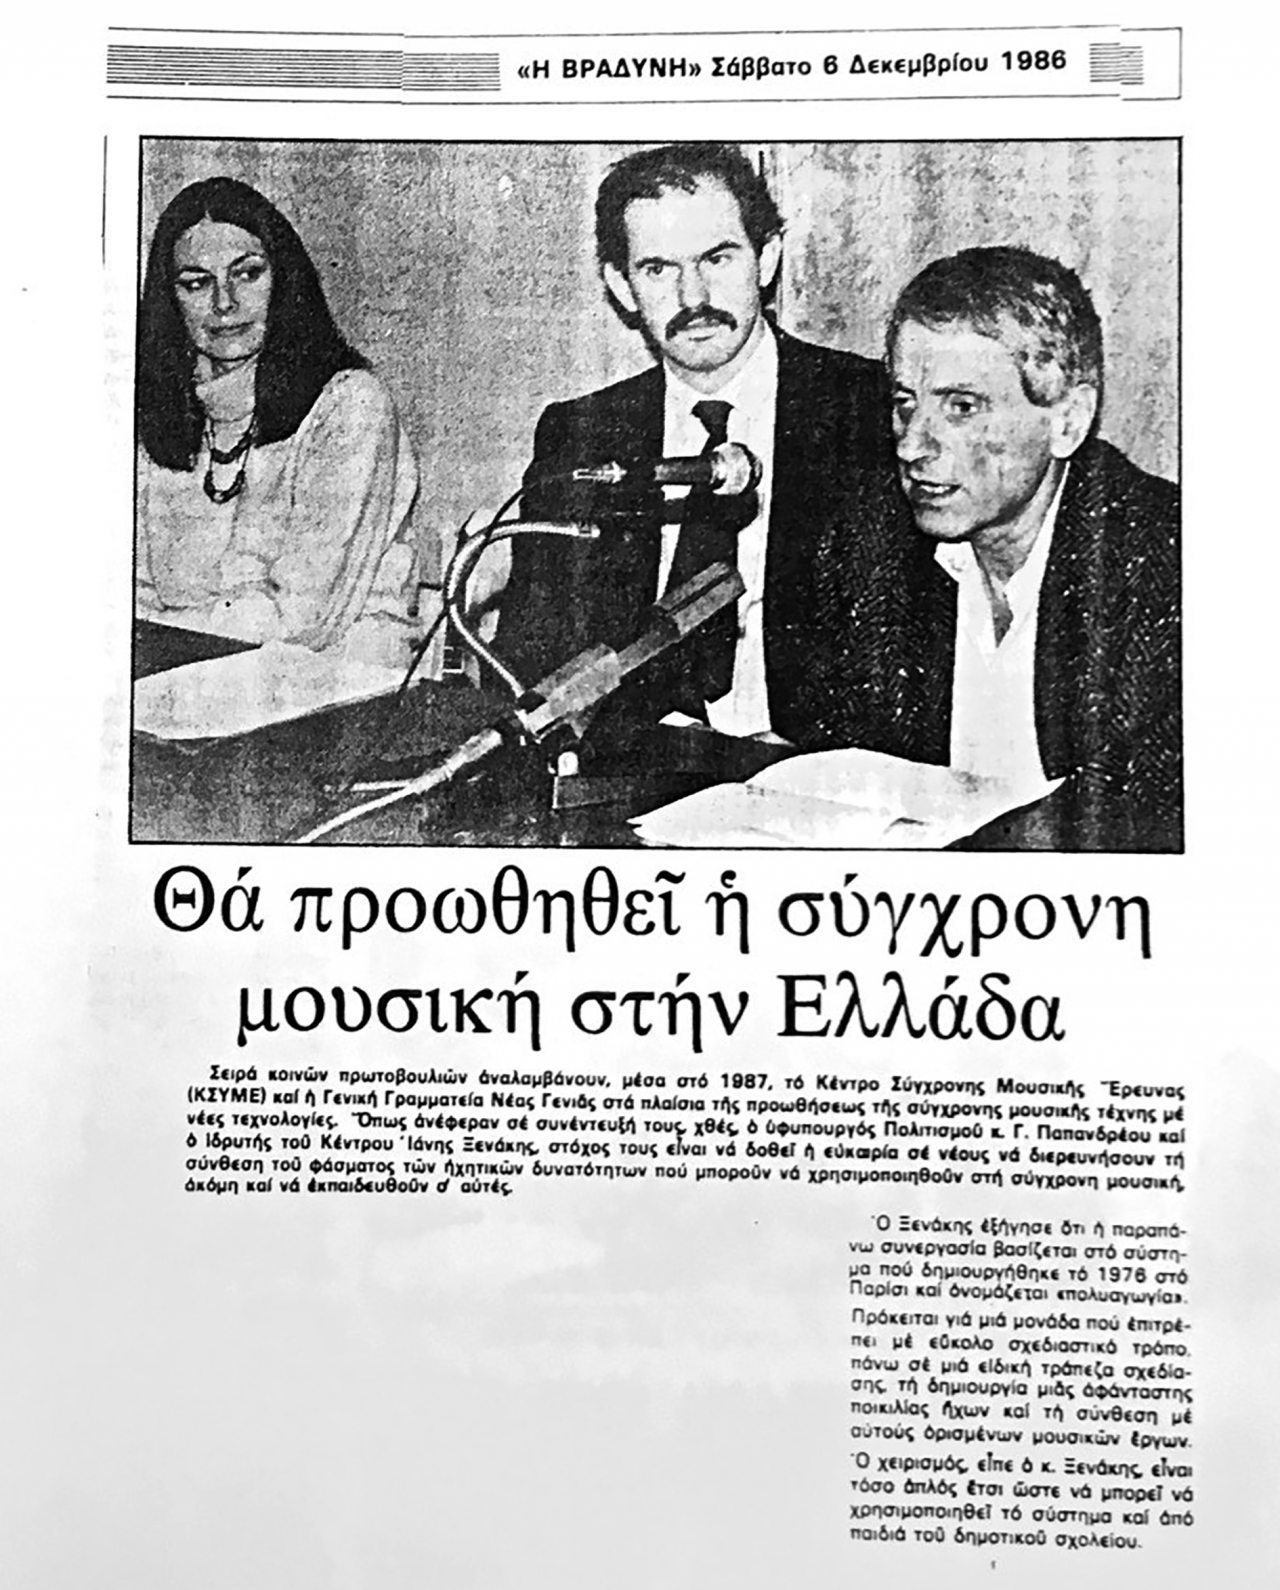 Iannis Xenakis with Giorgos Papandreou, as v. Minister of Cultural Affairs announcing new courses with UPIC for young students.